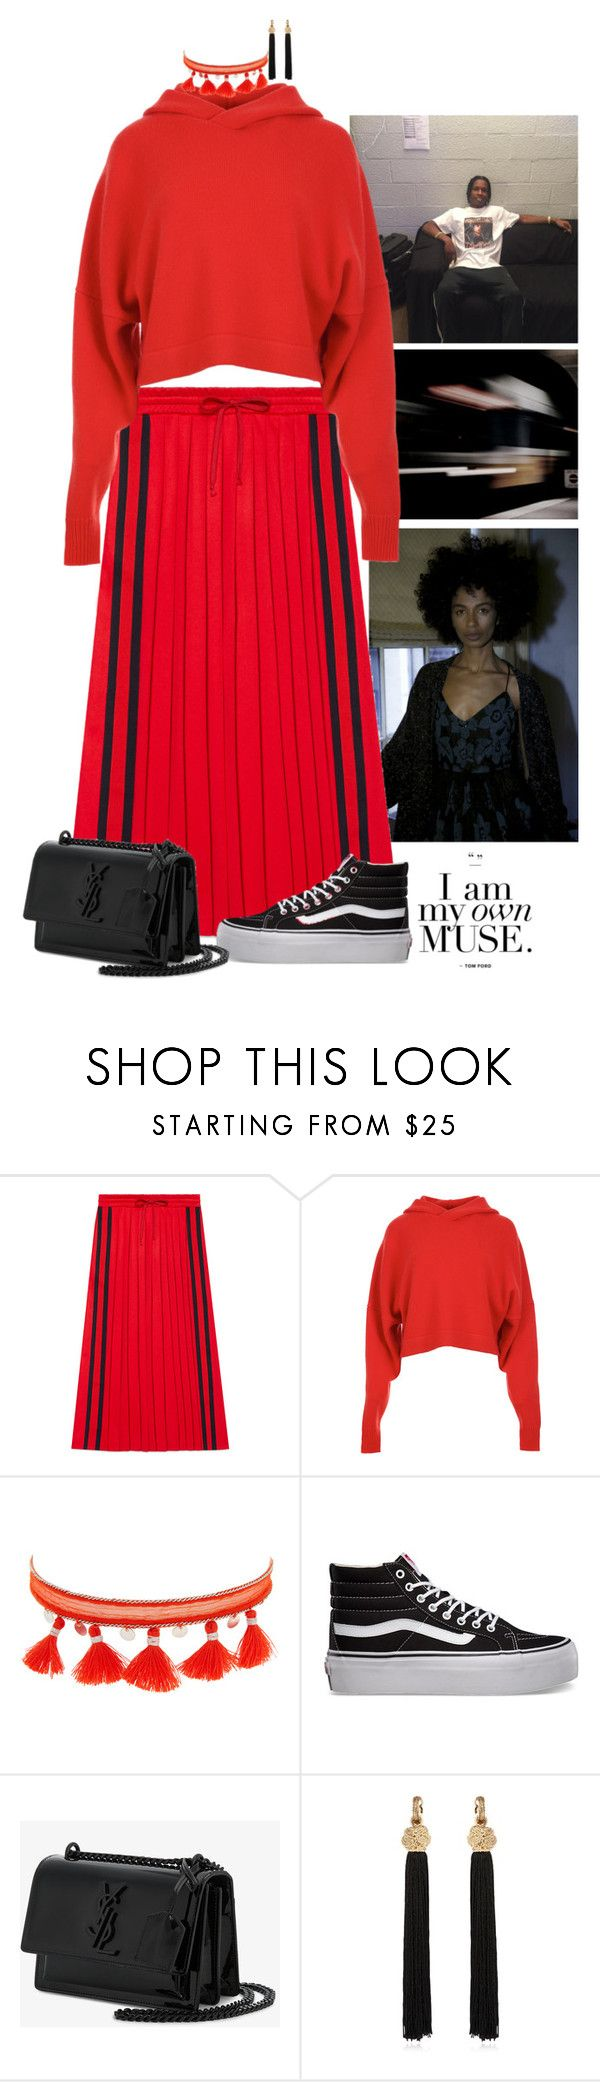 """""""I am My own MUSE"""" by swankt on Polyvore featuring Tracy Reese, Gucci, TIBI, Chan Luu, Vans and Yves Saint Laurent"""